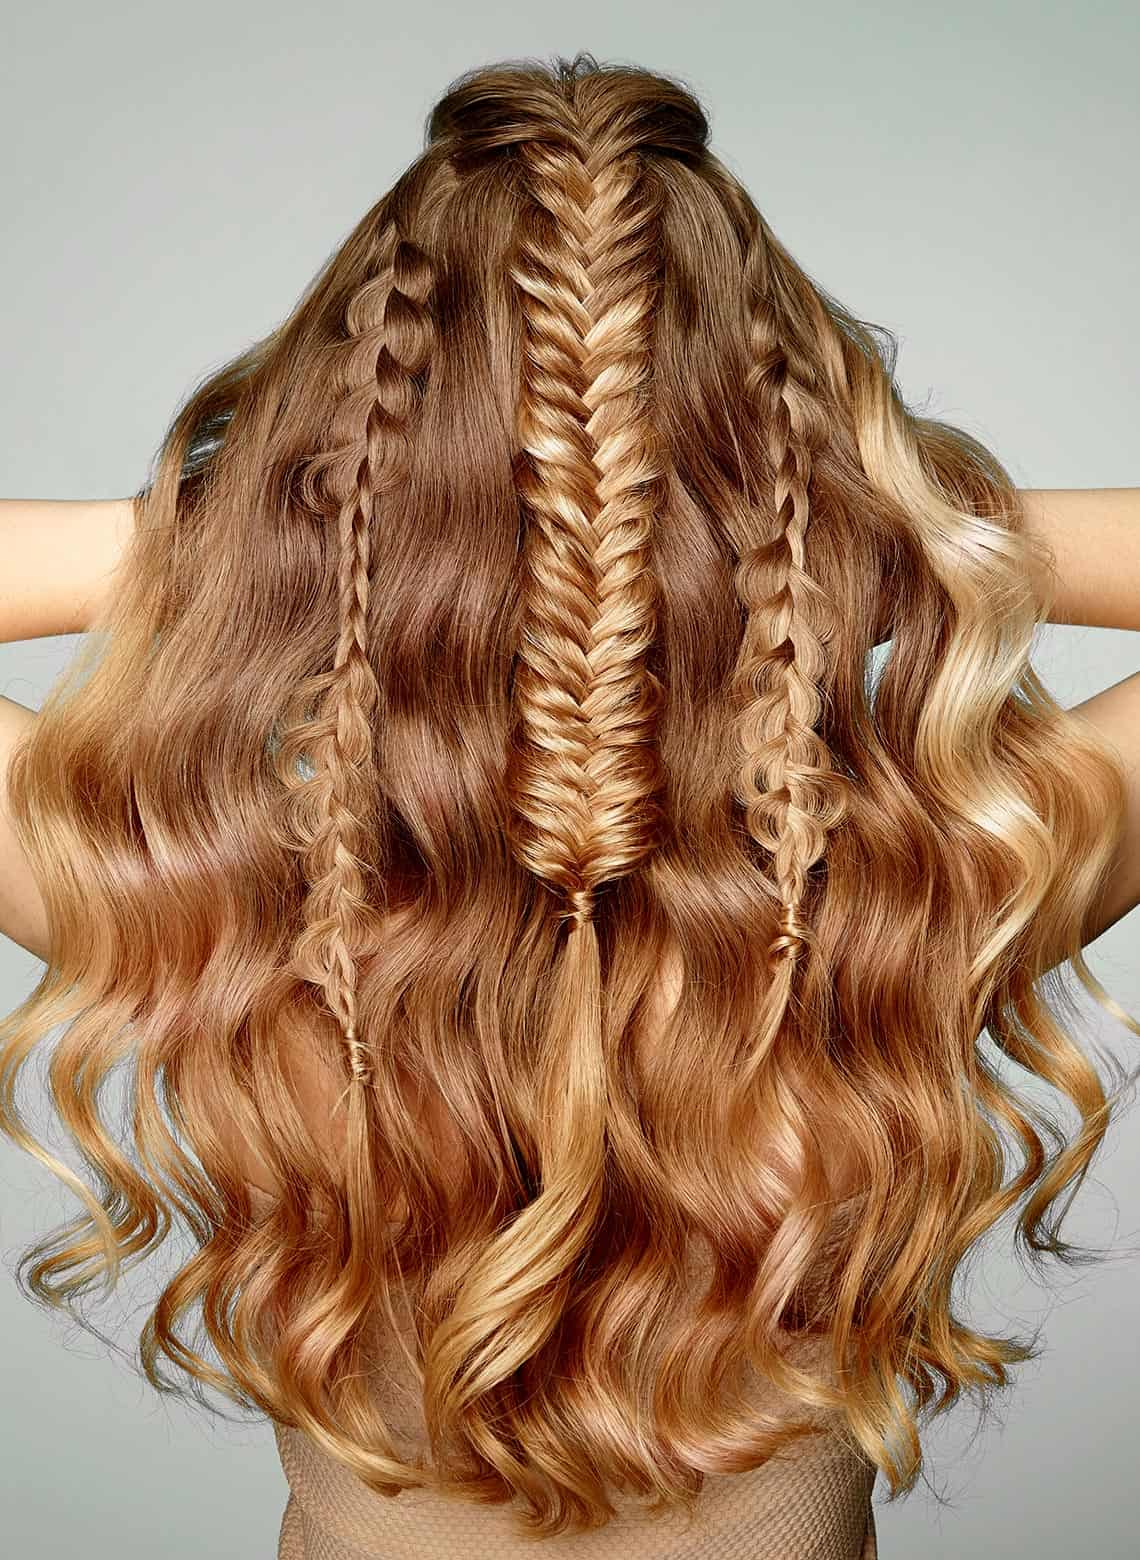 woman with fishtail braids and curls